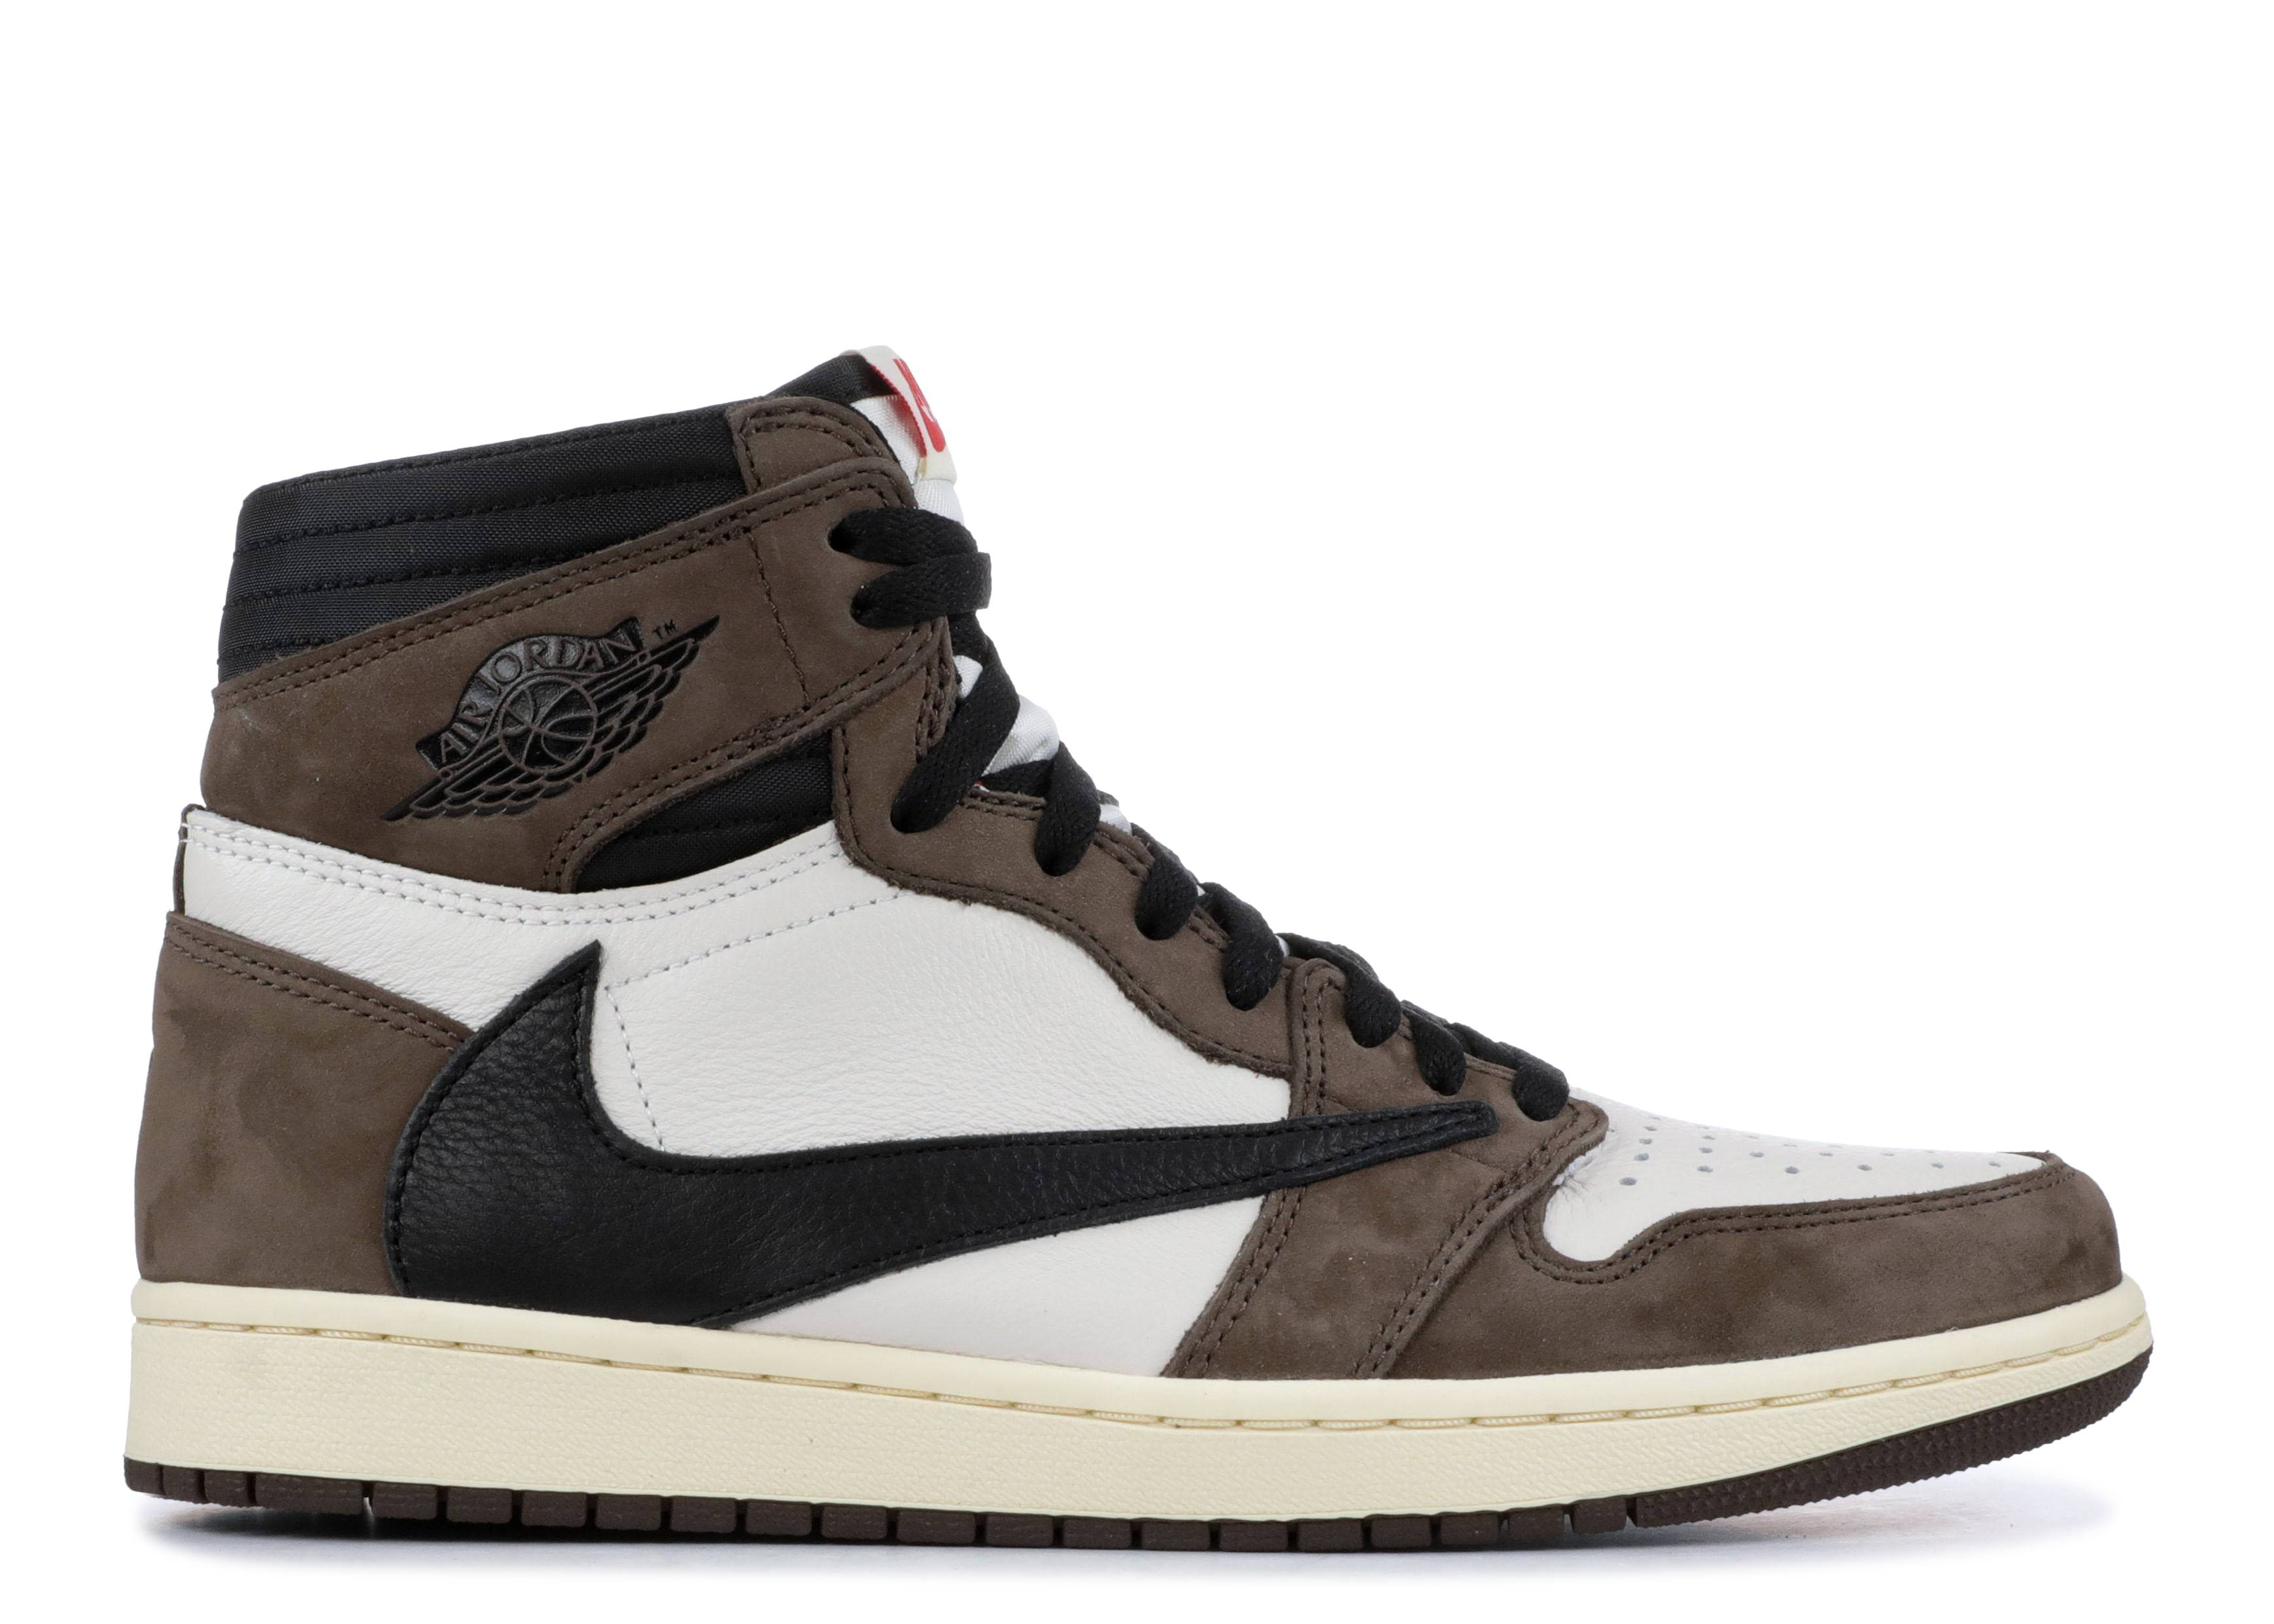 Afirmar El respeto familia real  Travis Scott X Air Jordan 1 Retro High OG 'Mocha' - Air Jordan - CD4487 100  - sail/dark mocha-university red-black | Flight Club